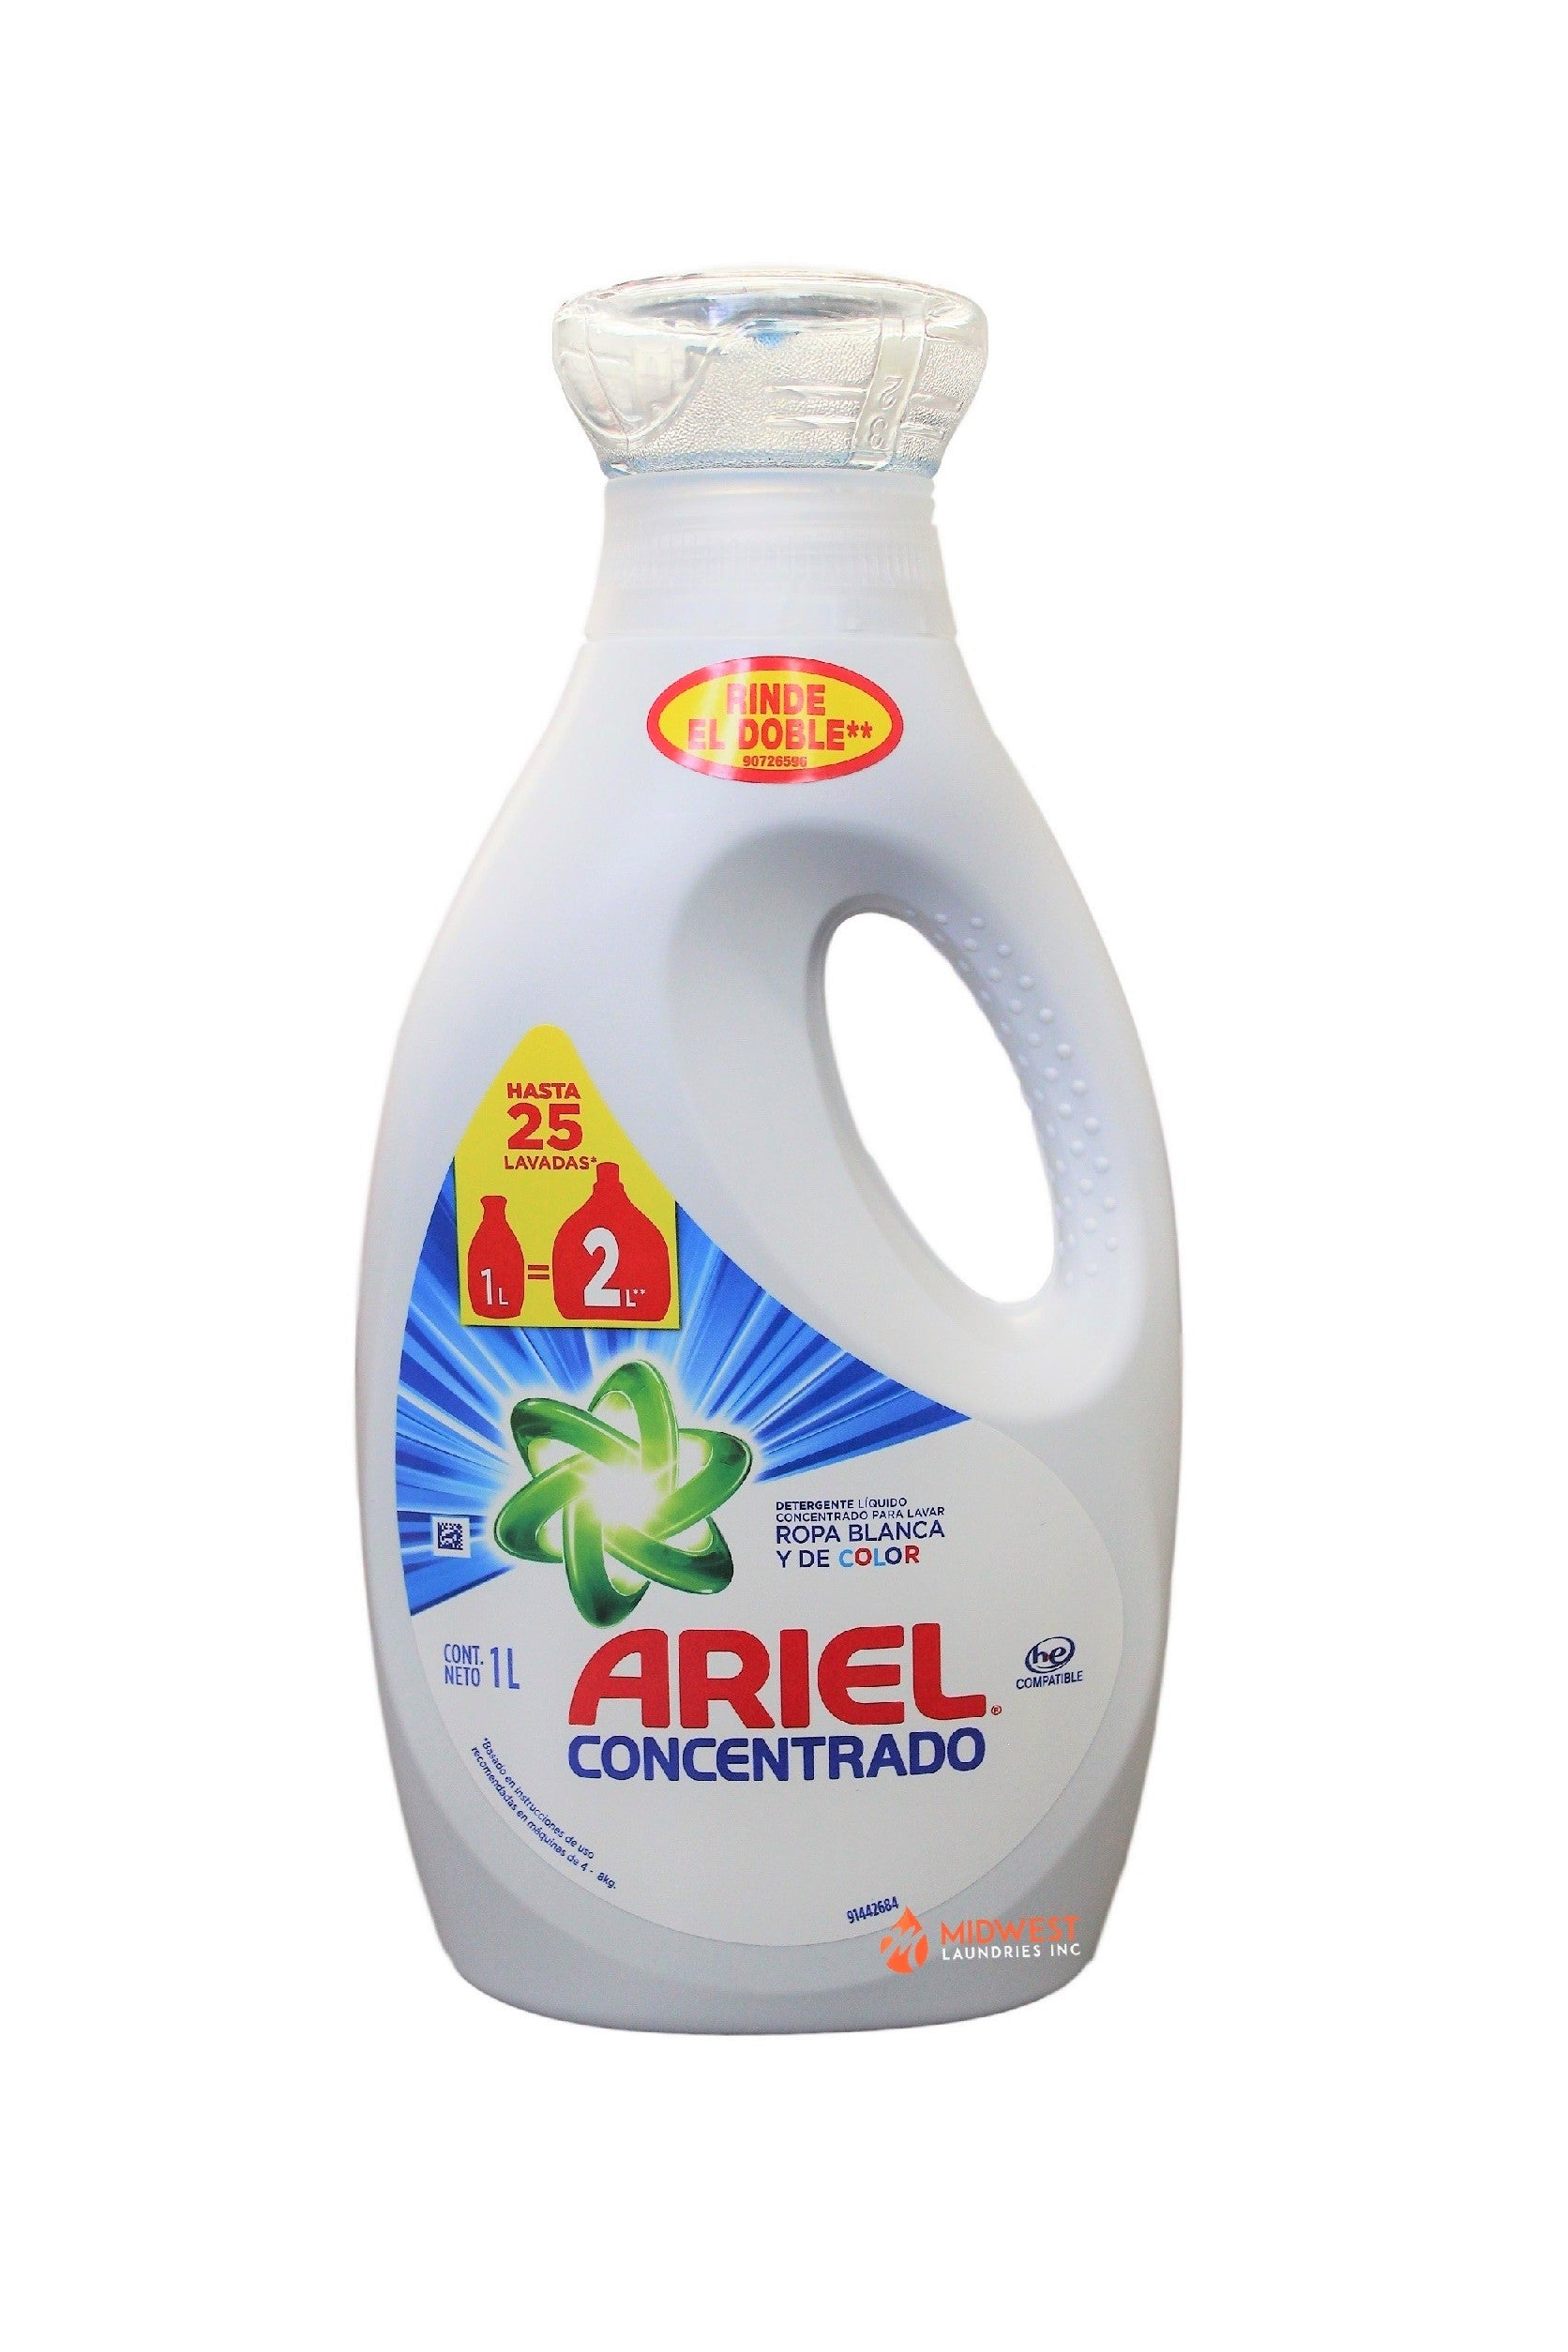 Ariel Liquid Detergent, 33 8oz - 12ct